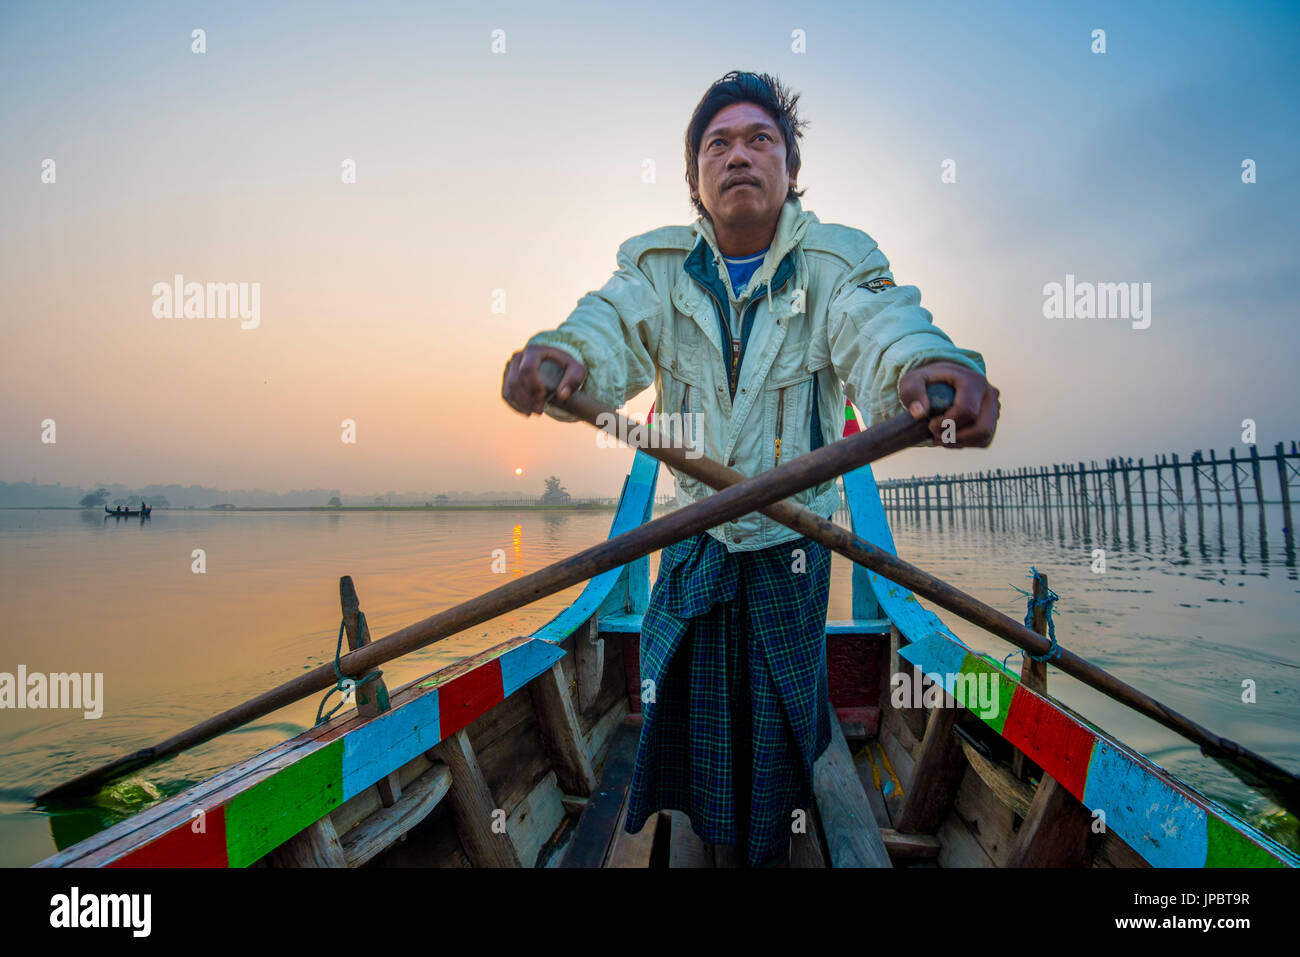 Amarapura, Mandalay region, Myanmar. Man rowing on his colorful boat  on the Taungthaman lake  at sunrise, with - Stock Image